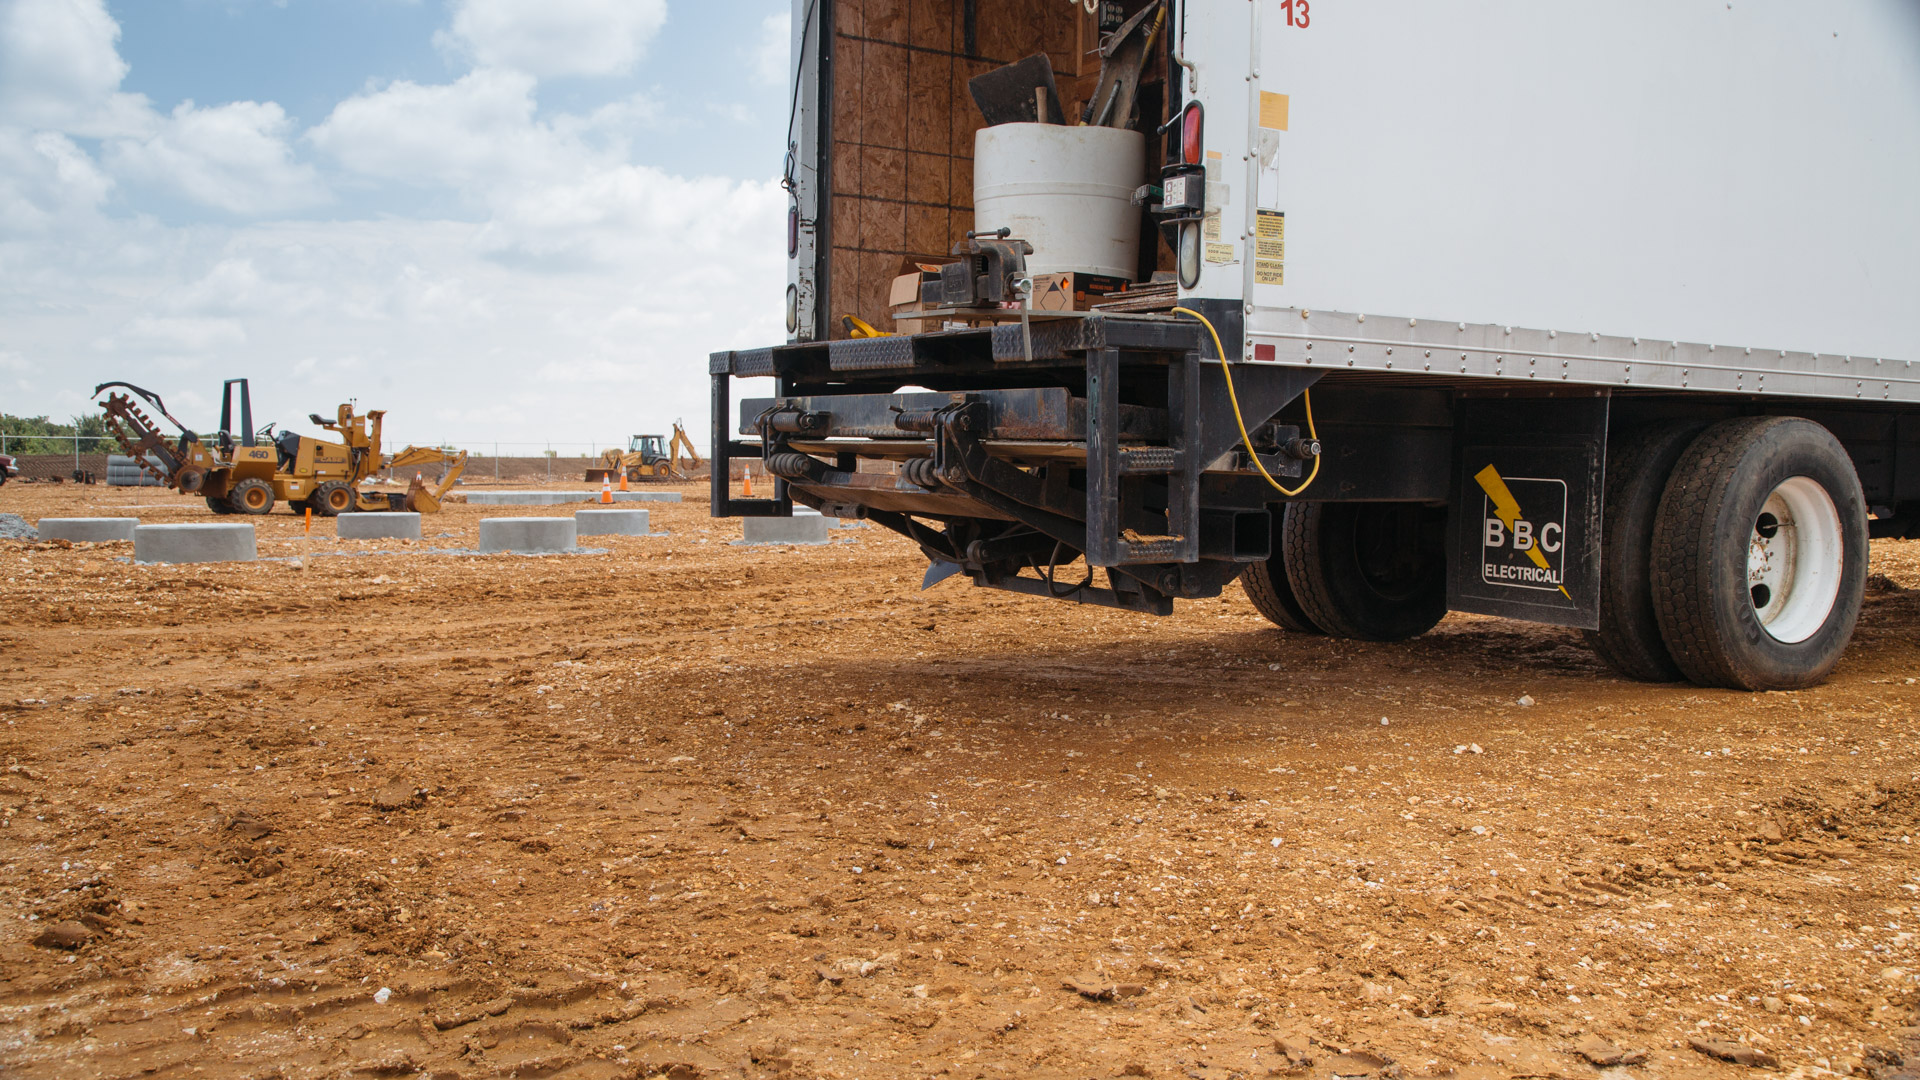 Image of rear of BBC Electric truck at the Empire Substation construction site in Joplin, MO.